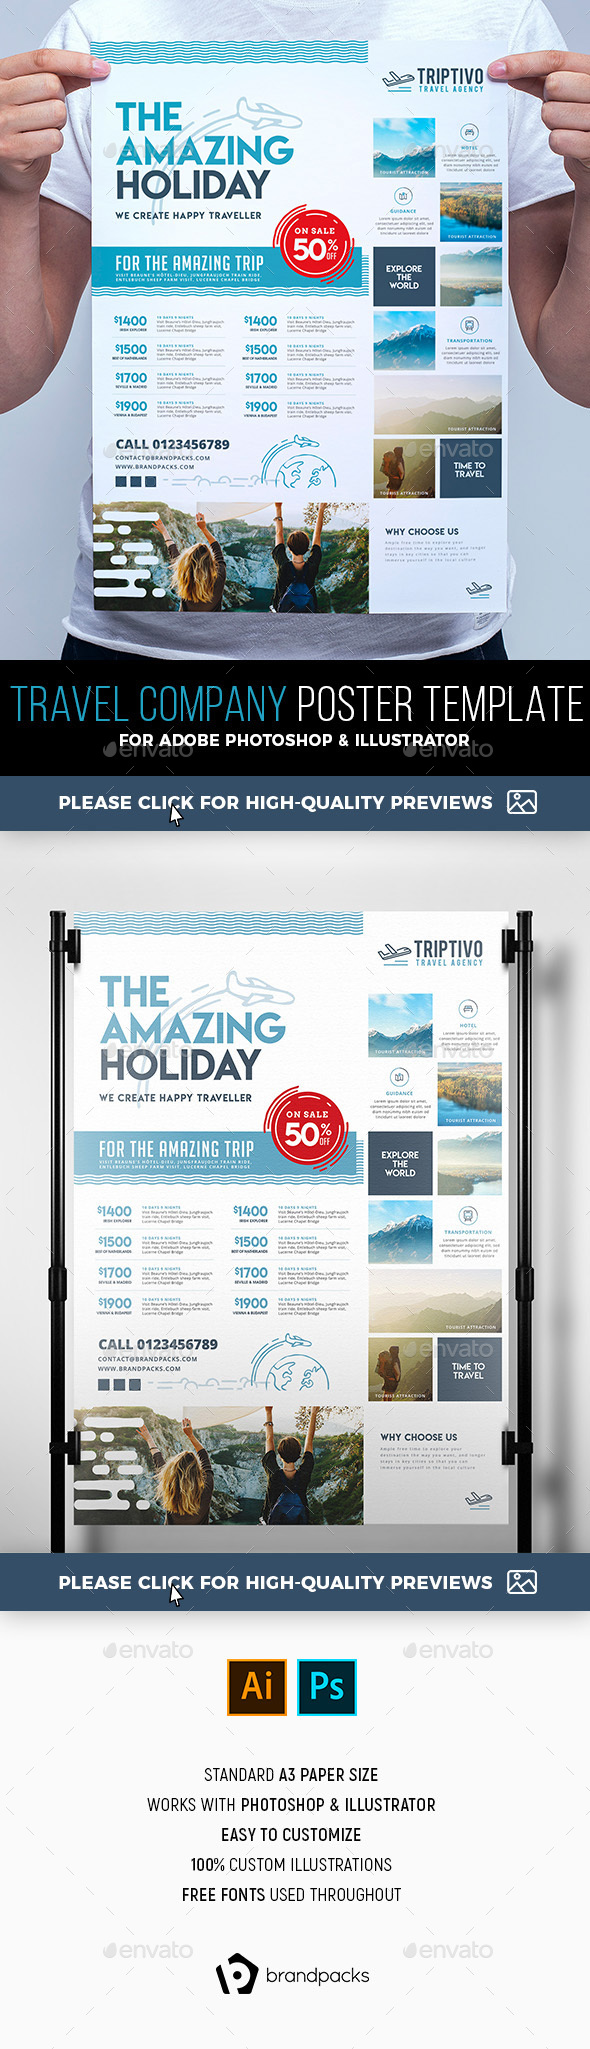 Travel Company Poster Template - Corporate Flyers